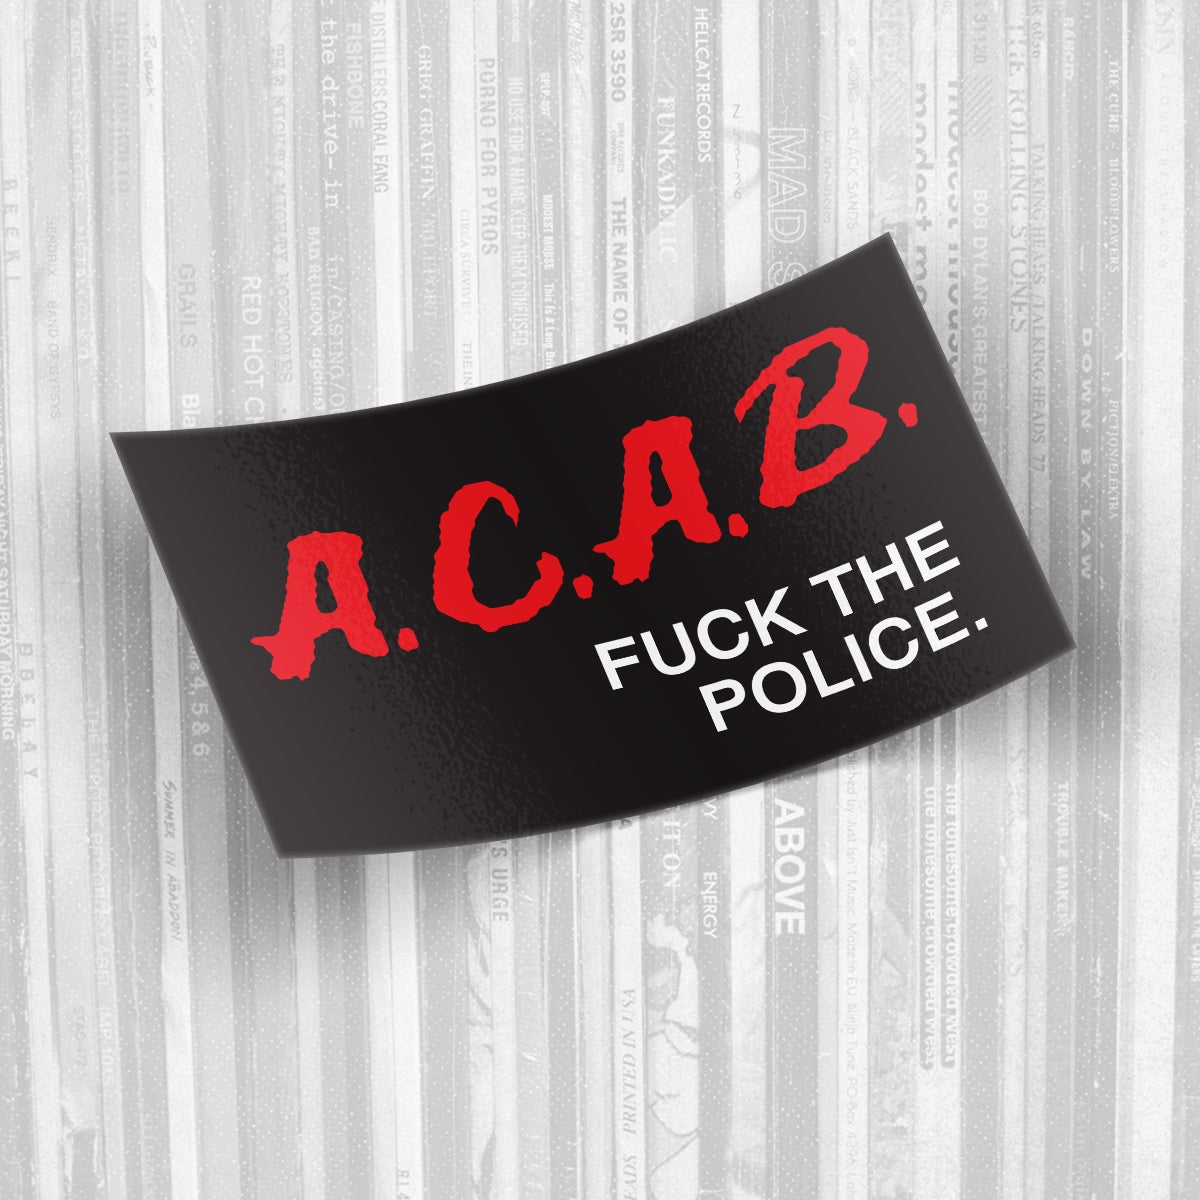 ACAB - D.A.R.E. sticker spoofs